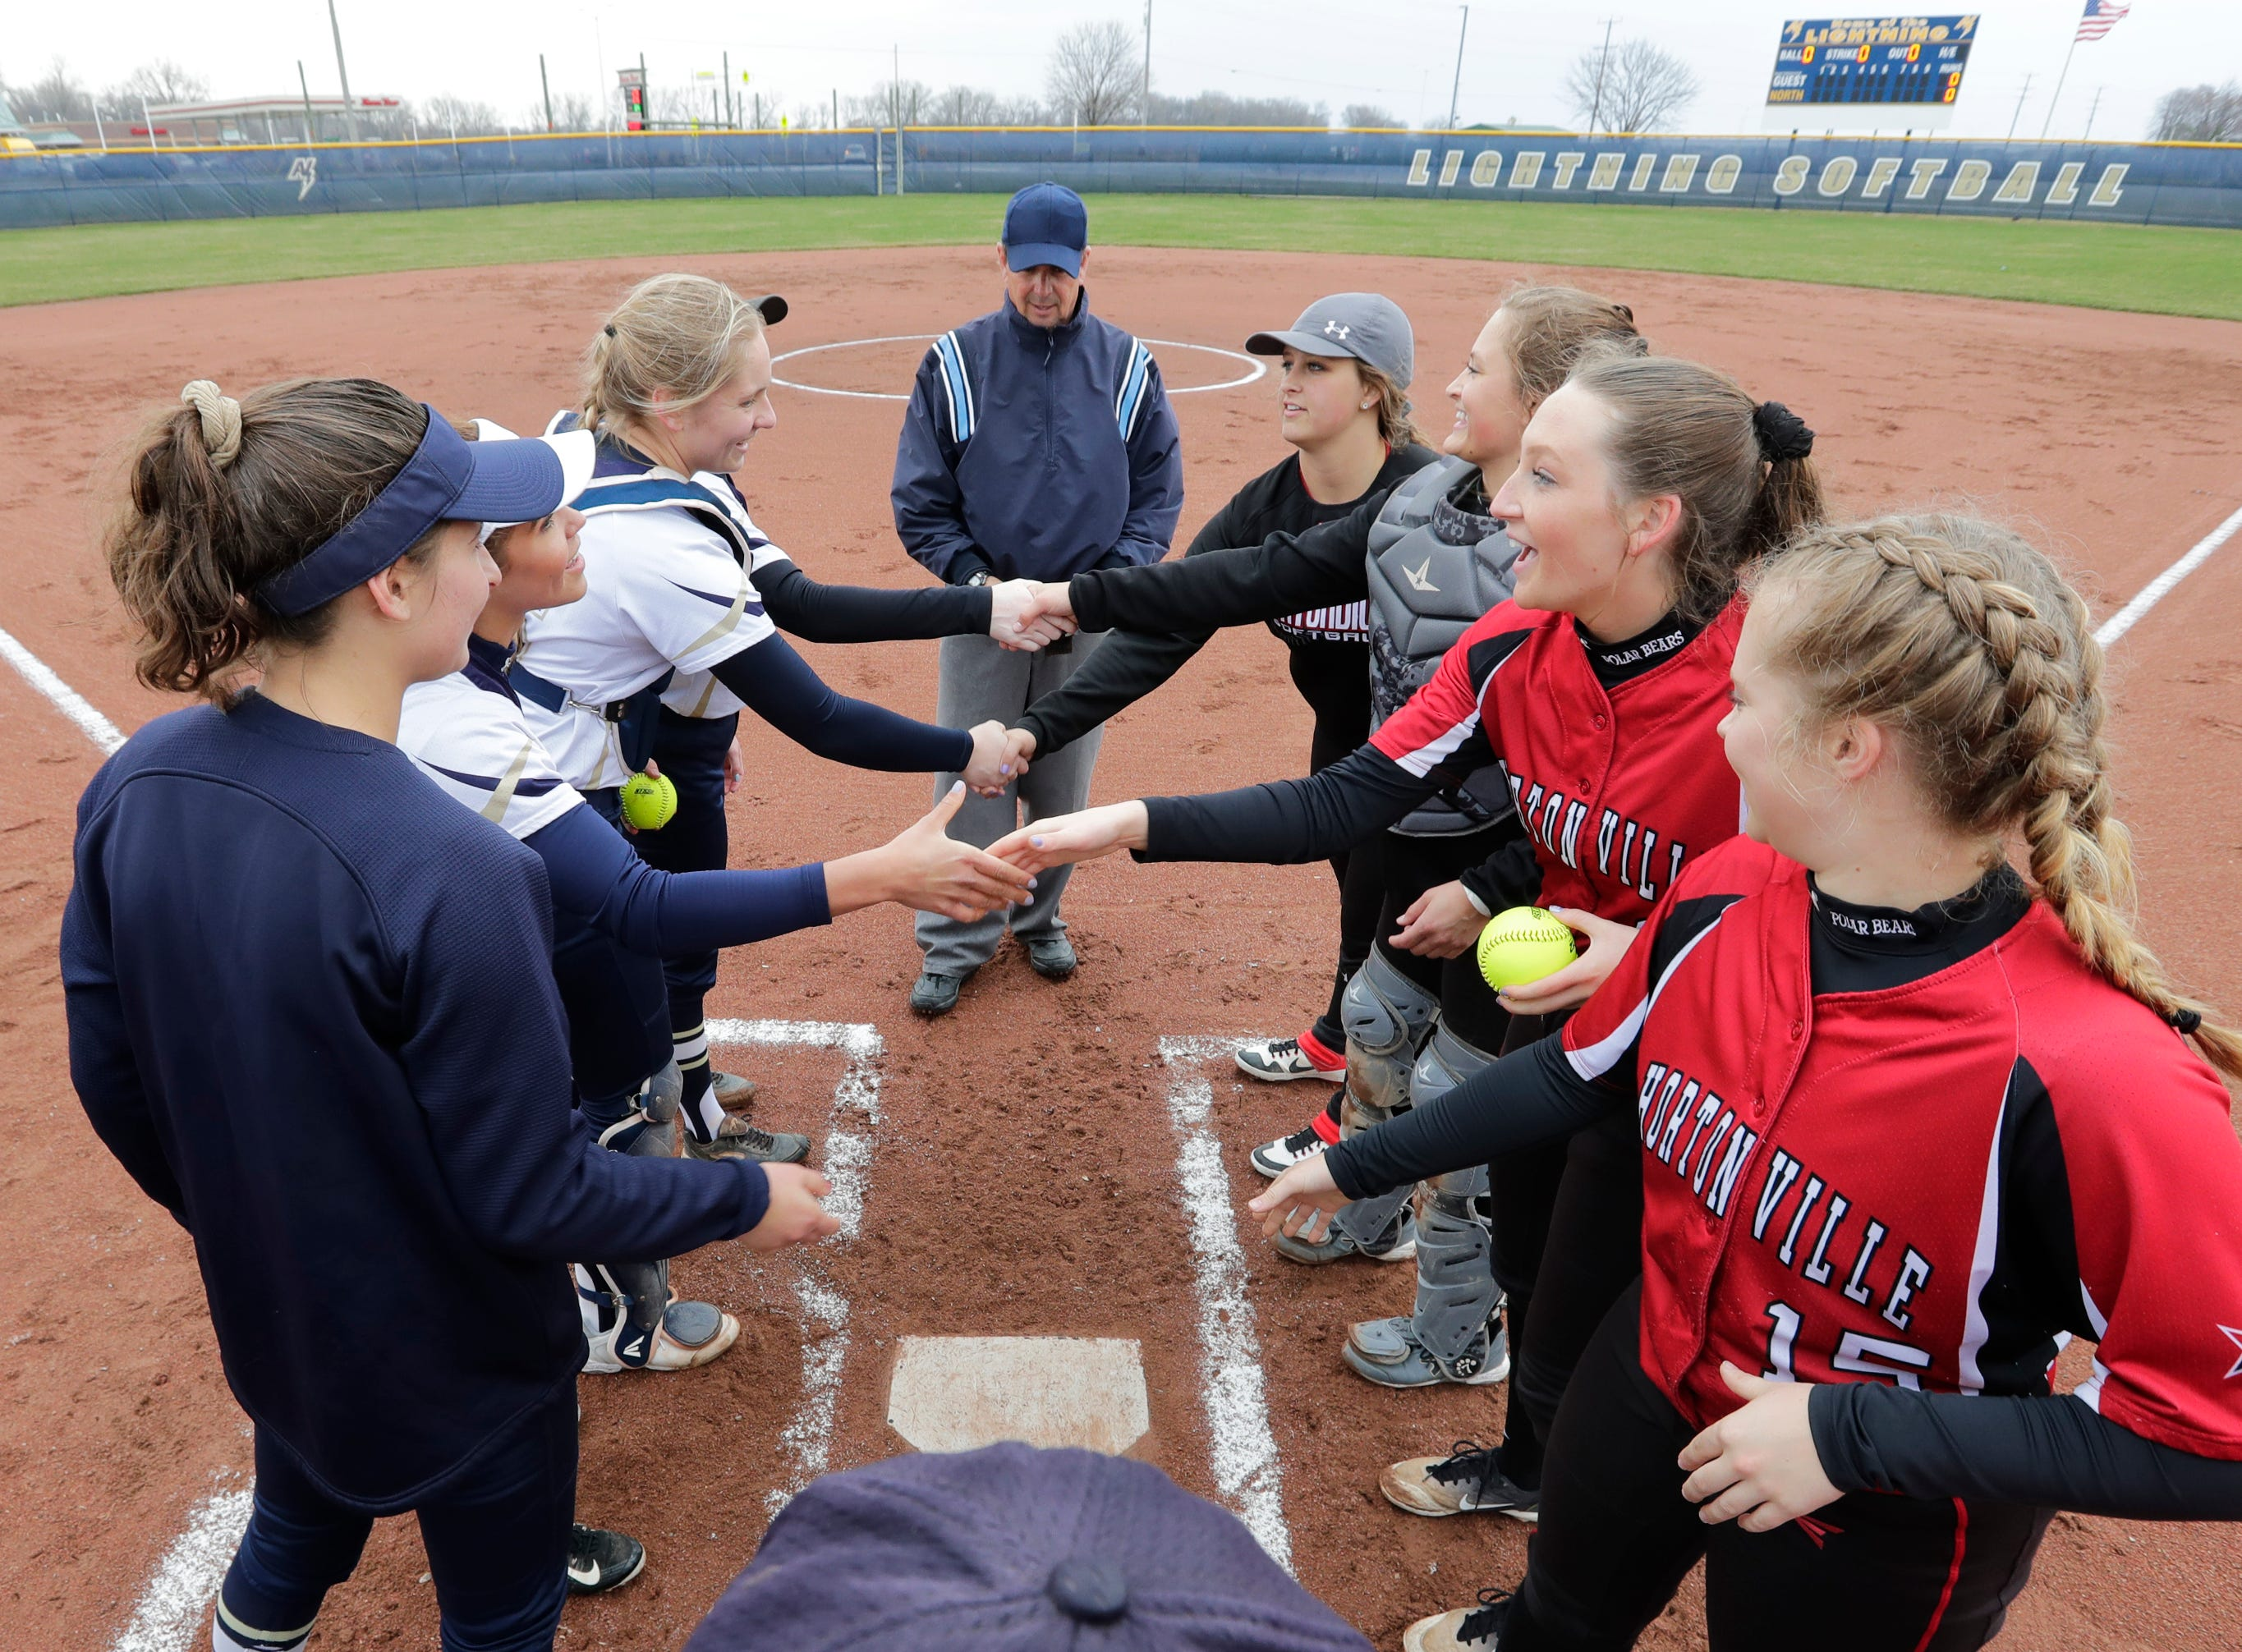 Appleton North High School's players shake hands with Hortonville High School's players at the start of their girls softball game Monday, April 22, 2019, in Appleton, Wis. 